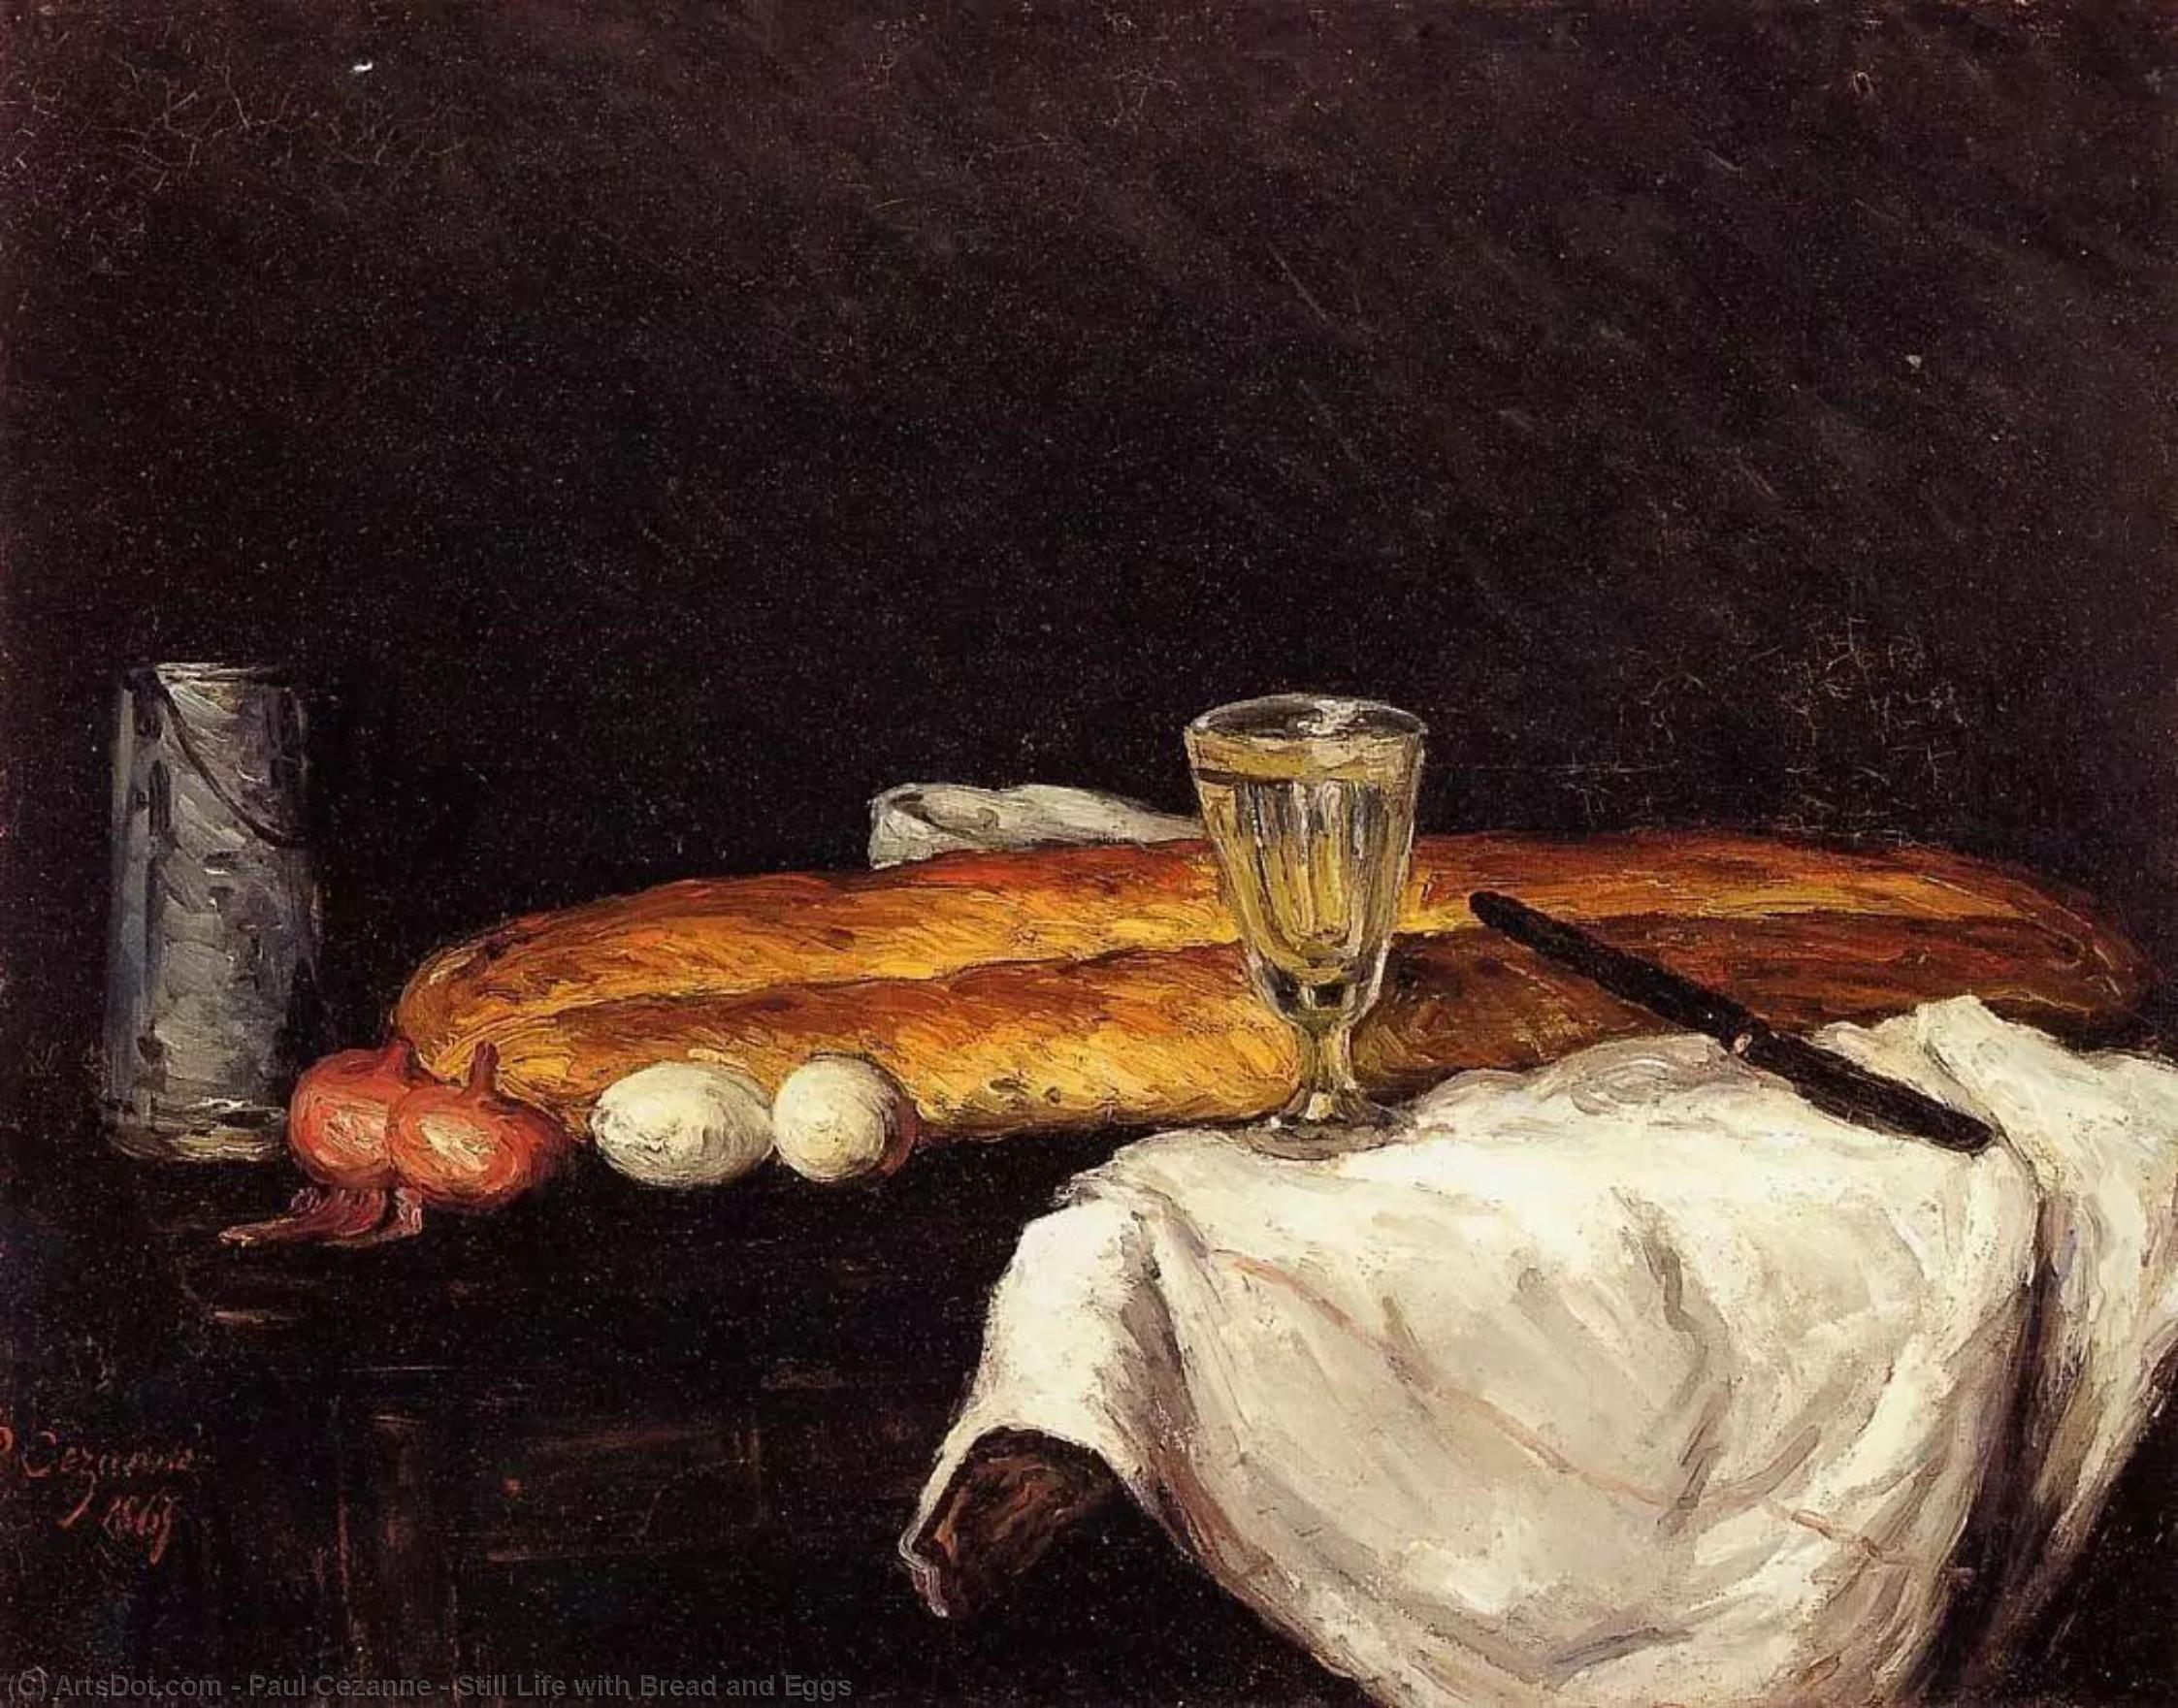 Wikioo.org - The Encyclopedia of Fine Arts - Painting, Artwork by Paul Cezanne - Still Life with Bread and Eggs